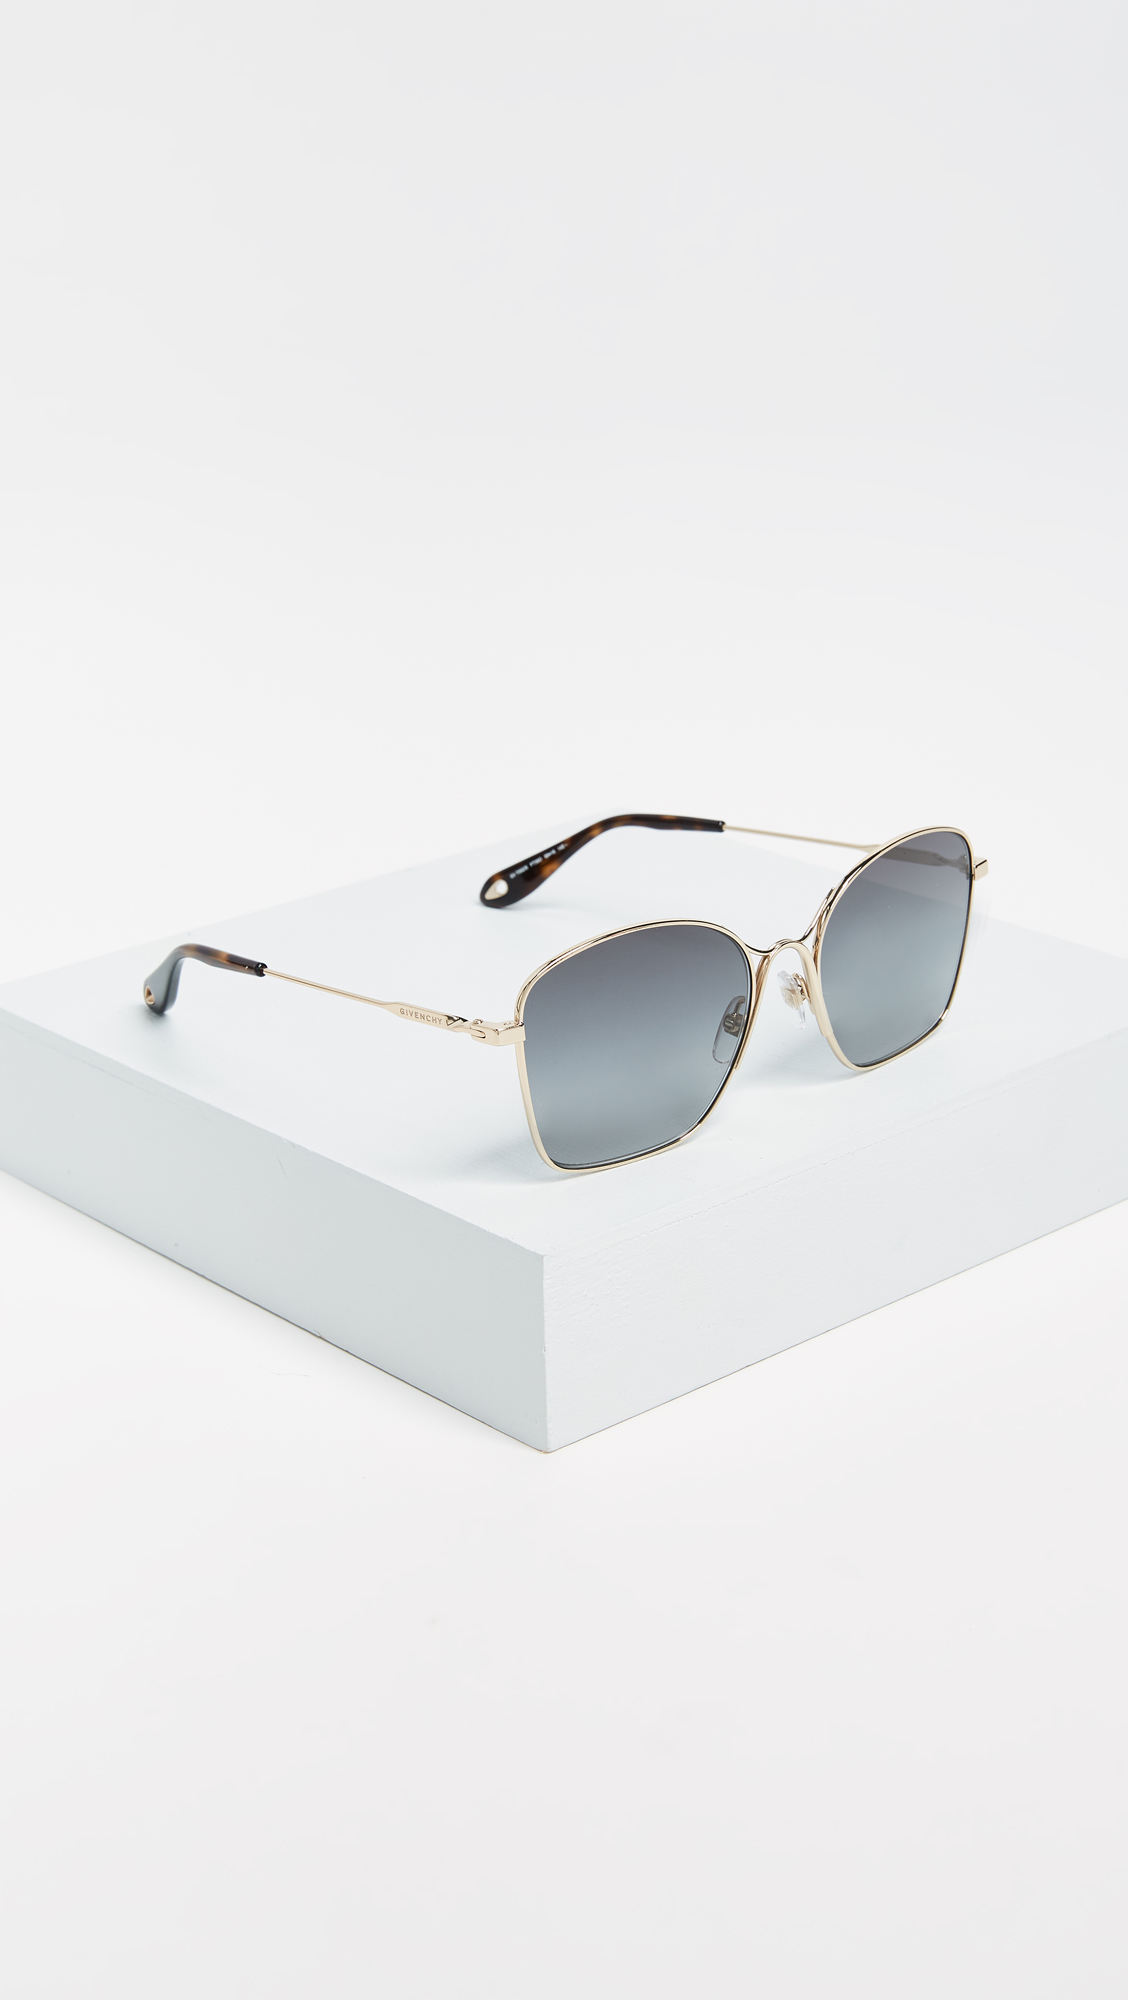 Square-frame metal sunglasses Givenchy oiT8rn2fXL